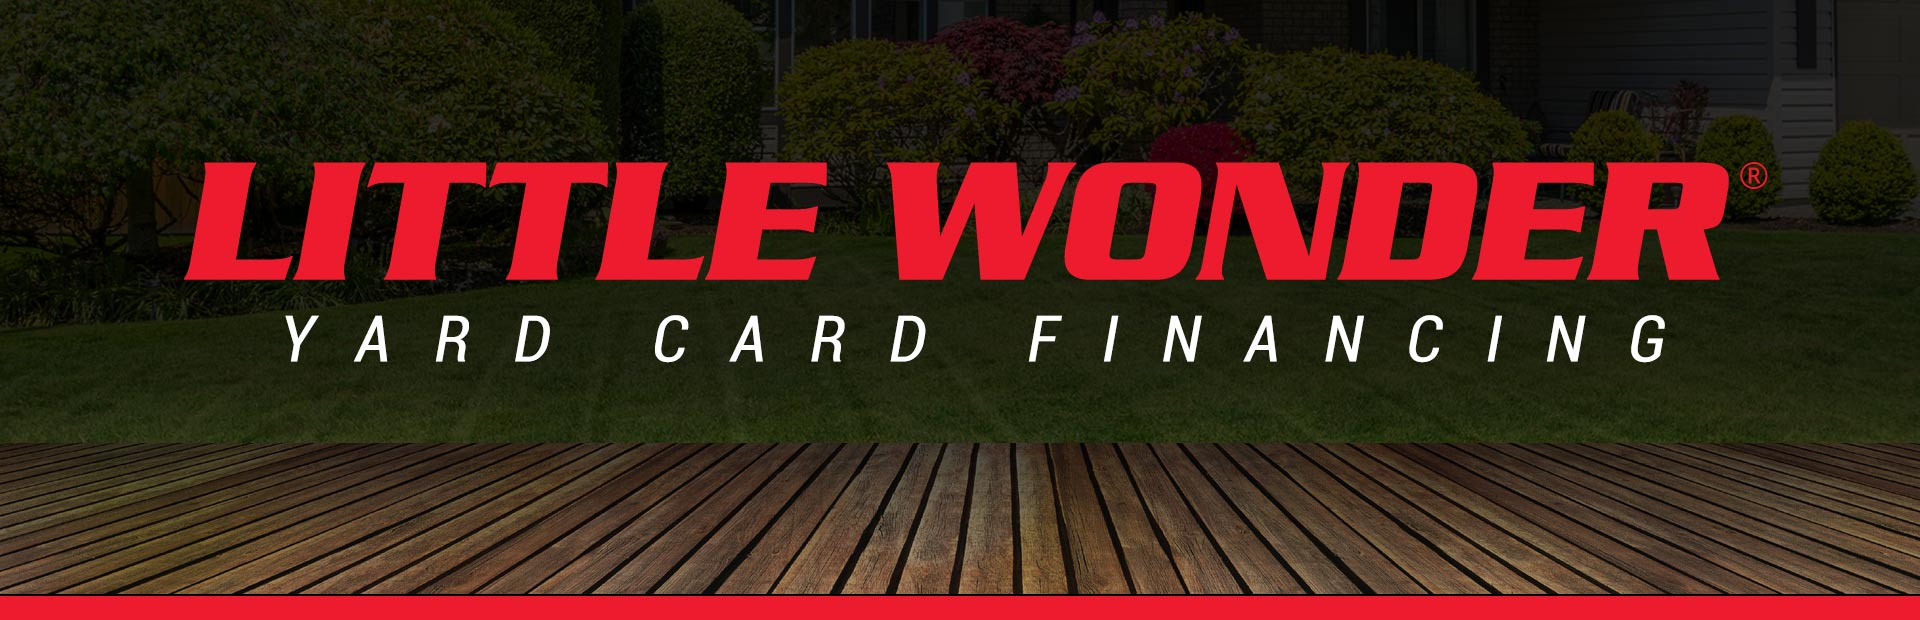 Little Wonder: Little Wonder – Yard Card Financing Programs